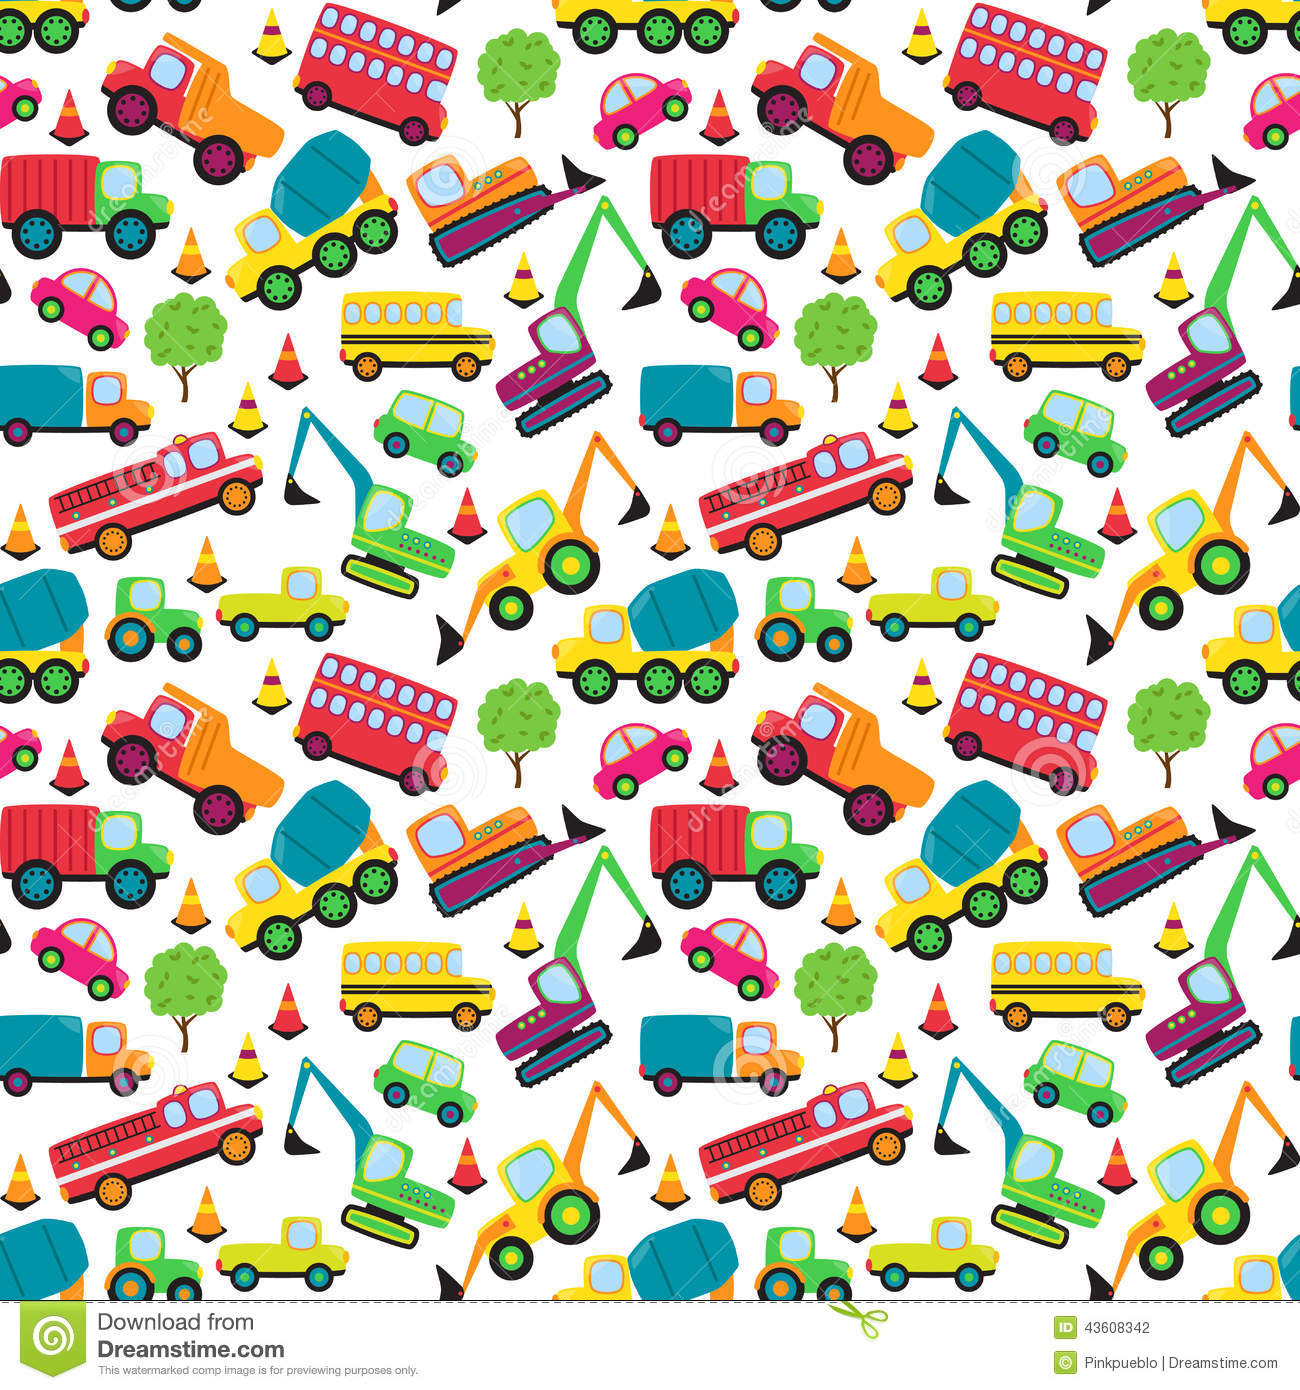 Audio Car Wallpaper Download Transportation Themed Seamless Tileable Background Pattern